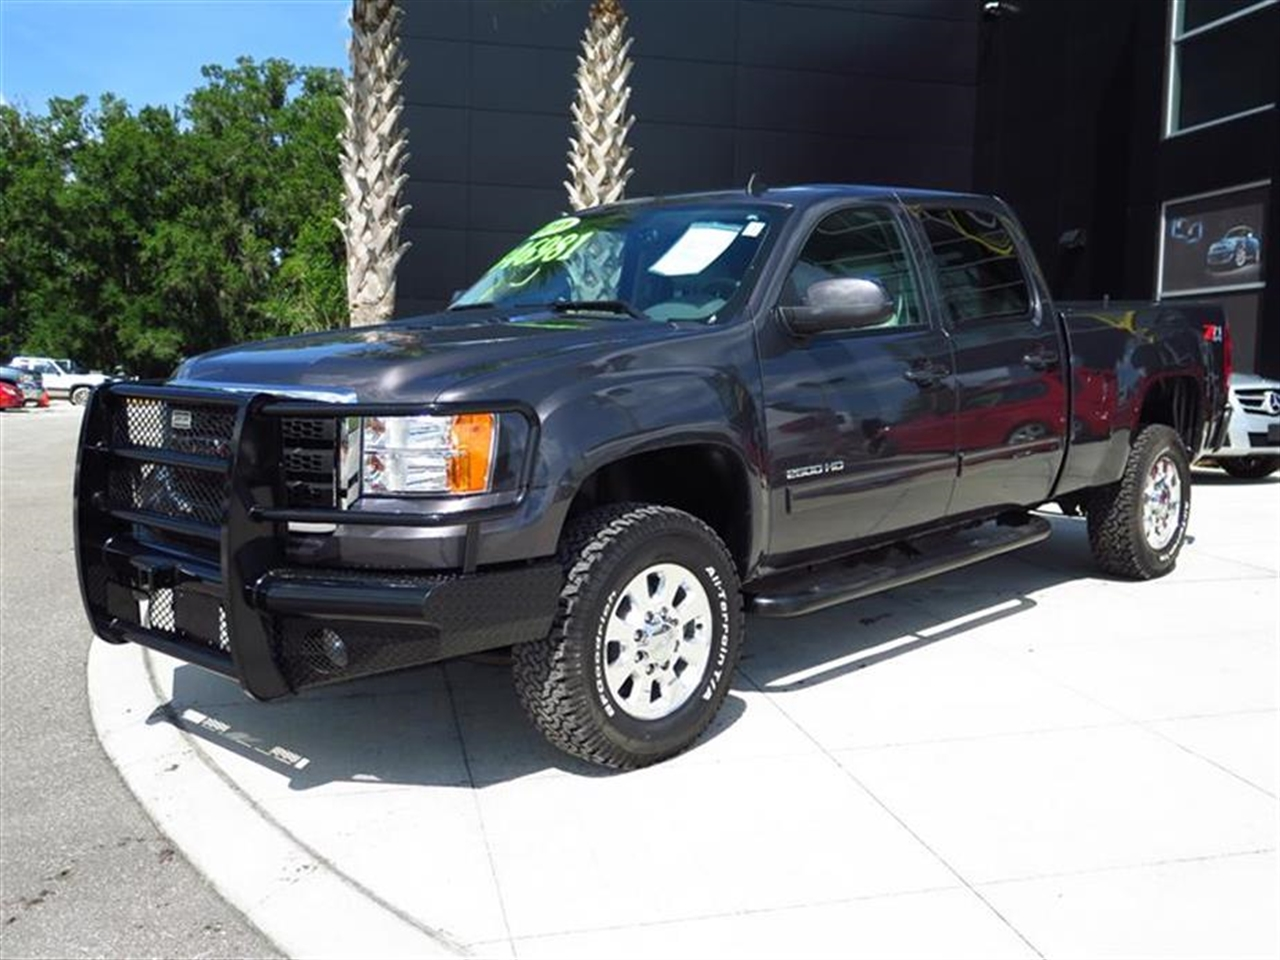 2011 GMC SIERRA 2500HD 4WD Crew Cab SLT 37177 miles Air conditioning dual-zone automatic climate